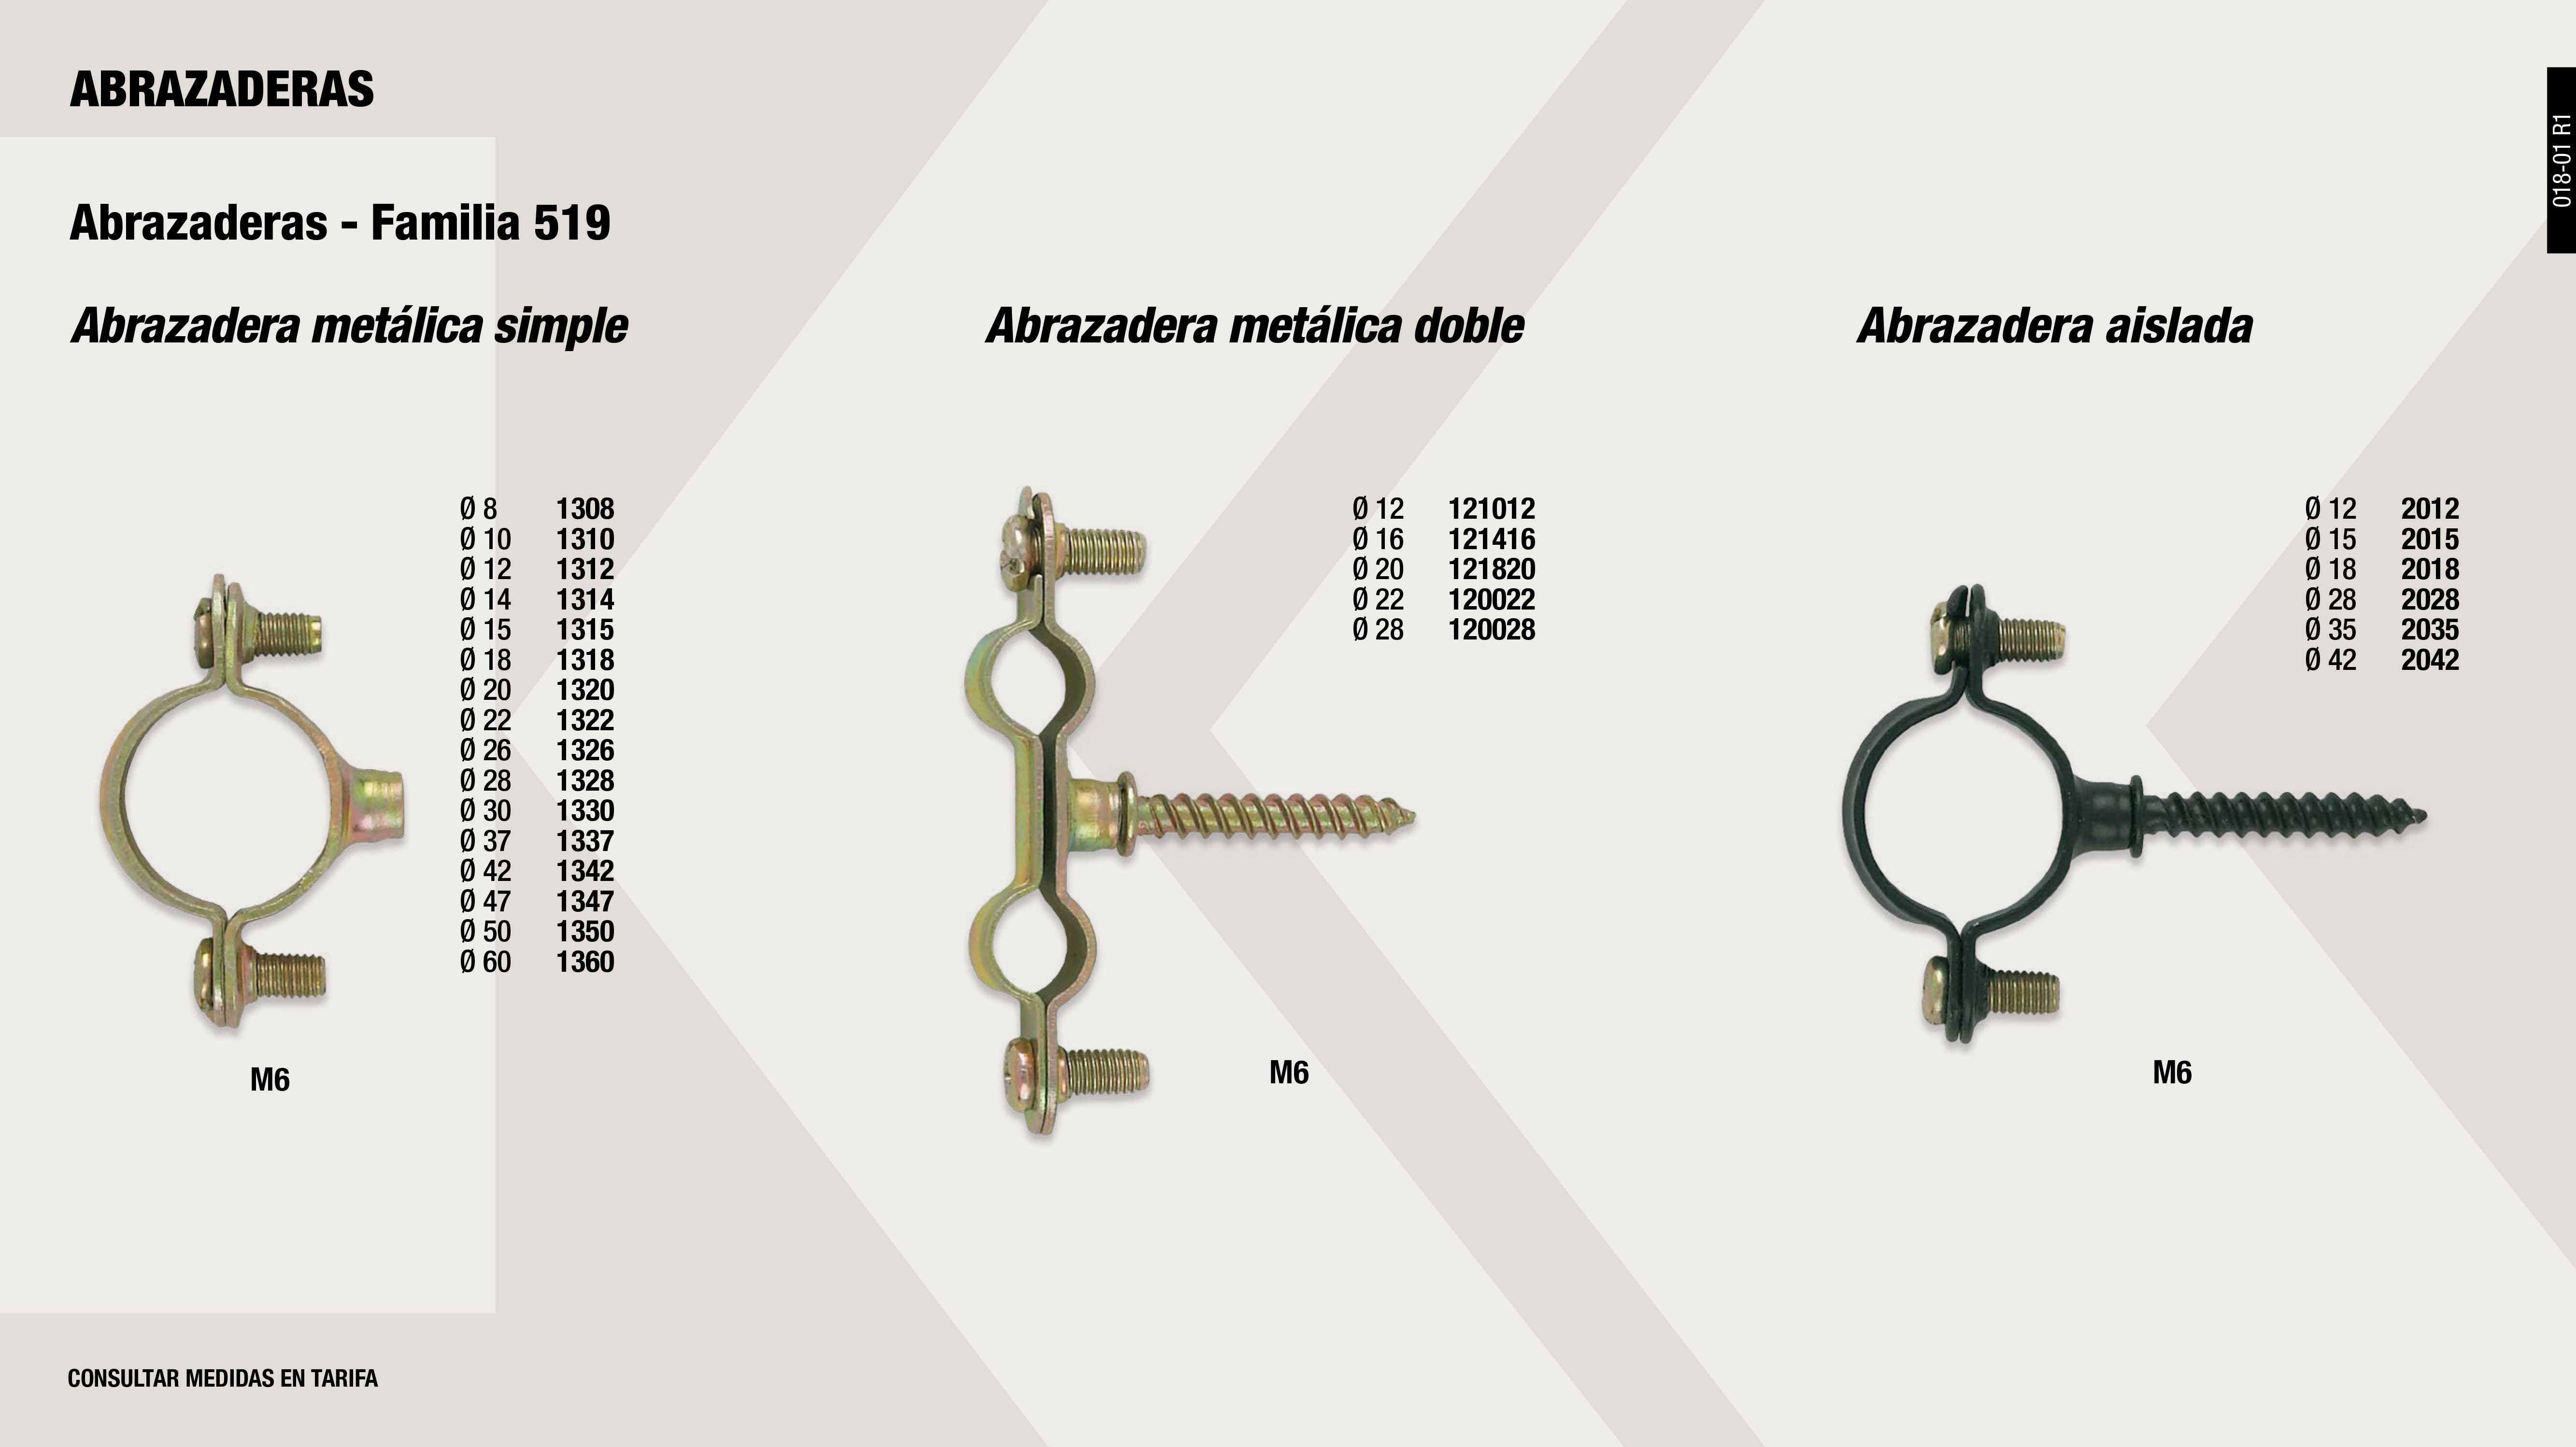 ABRAZADERA METALICA DOBLE 22 MM.                            ,  									ABRAZADERA METALICA DOBLE 28 MM.                            ,  									ABRAZADERA METALICA SIMPLE 14 MM.                           ,  									ABRAZADERA METALICA SIMPLE 20 MM.                           ,  									ABRAZADERA METALICA SIMPLE 28 MM.                           ,  									ABRAZADERA METALICA SIMPLE 37 MM.                           ,  									ABRAZADERA METALICA SIMPLE 47 MM.                           ,  									ABRAZADERA 15MM AISLADA NEGRA M6                            ,  									ABRAZADERA METALICA DOBLE 12 MM.                            ,  									ABRAZADERA METALICA DOBLE 20 MM.                            ,  									ABRAZADERA METALICA SIMPLE 15 MM.                           ,  									ABRAZADERA METALICA SIMPLE 22 MM.                           ,  									ABRAZADERA 18MM AISLADA NEGRA M6                            ,  									ABRAZADERA METALICA SIMPLE 12 MM.                           ,  									ABRAZADERA 28MM AISLADA NEGRA M6                            ,  									ABRAZADERA METALICA SIMPLE 10 MM.                           ,  									ABRAZADERA METALICA SIMPLE 18 MM.                           ,  									ABRAZADERA 42MM AISLADA NEGRA M6                            ,  									ABRAZADERA 35MM AISLADA NEGRA M6                            ,  									ABRAZADERA METALICA SIMPLE 60 MM.                           ,  									ABRAZADERA METALICA SIMPLE 24 MM.                           ,  									ABRAZADERA METALICA SIMPLE 30 MM.                           ,  									ABRAZADERA METALICA SIMPLE 42 MM.                           ,  									ABRAZADERA METALICA SIMPLE 50 MM.                           ,  									ABRAZADERA METALICA DOBLE 16 MM.                            ,  									ABRAZADERA METALICA SIMPLE 8 MM.                            ,  									ABRAZADERA METALICA SIMPLE 26 MM.                           ,  									ABRAZADERA 12MM AISLADA NEGRA M6                            ,